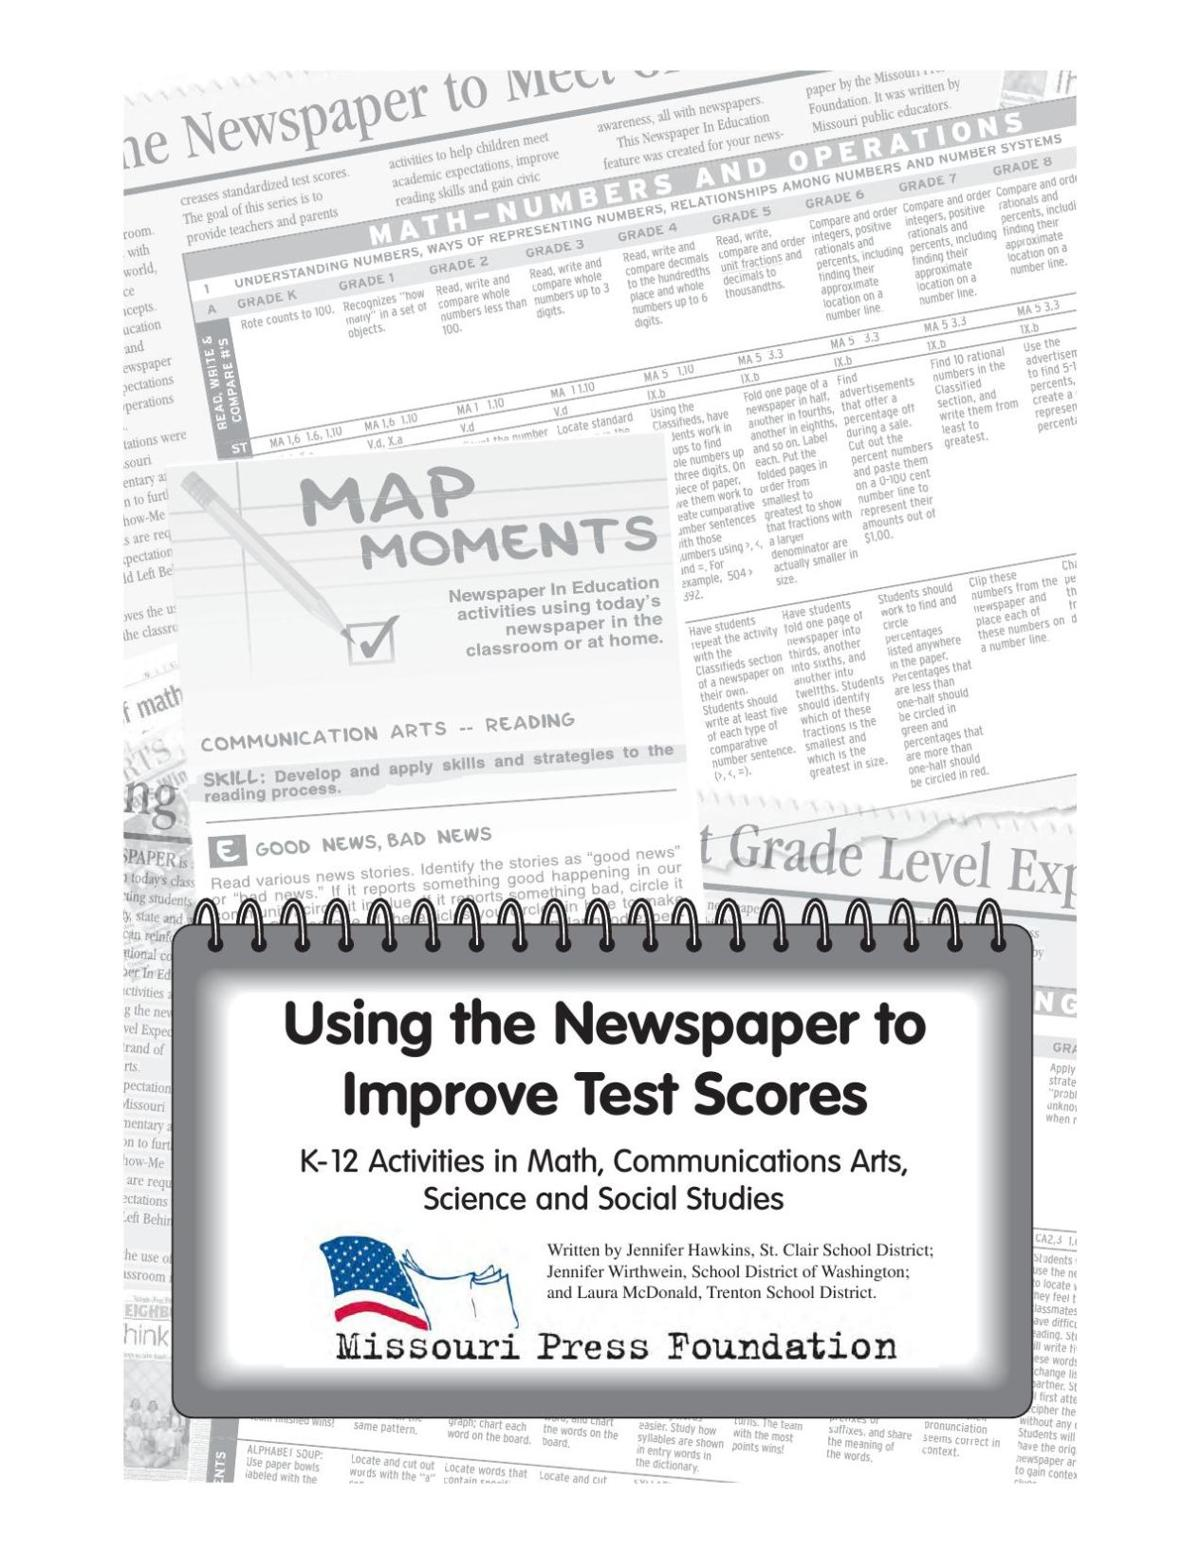 Using the Newspaper to Improve Test Scores